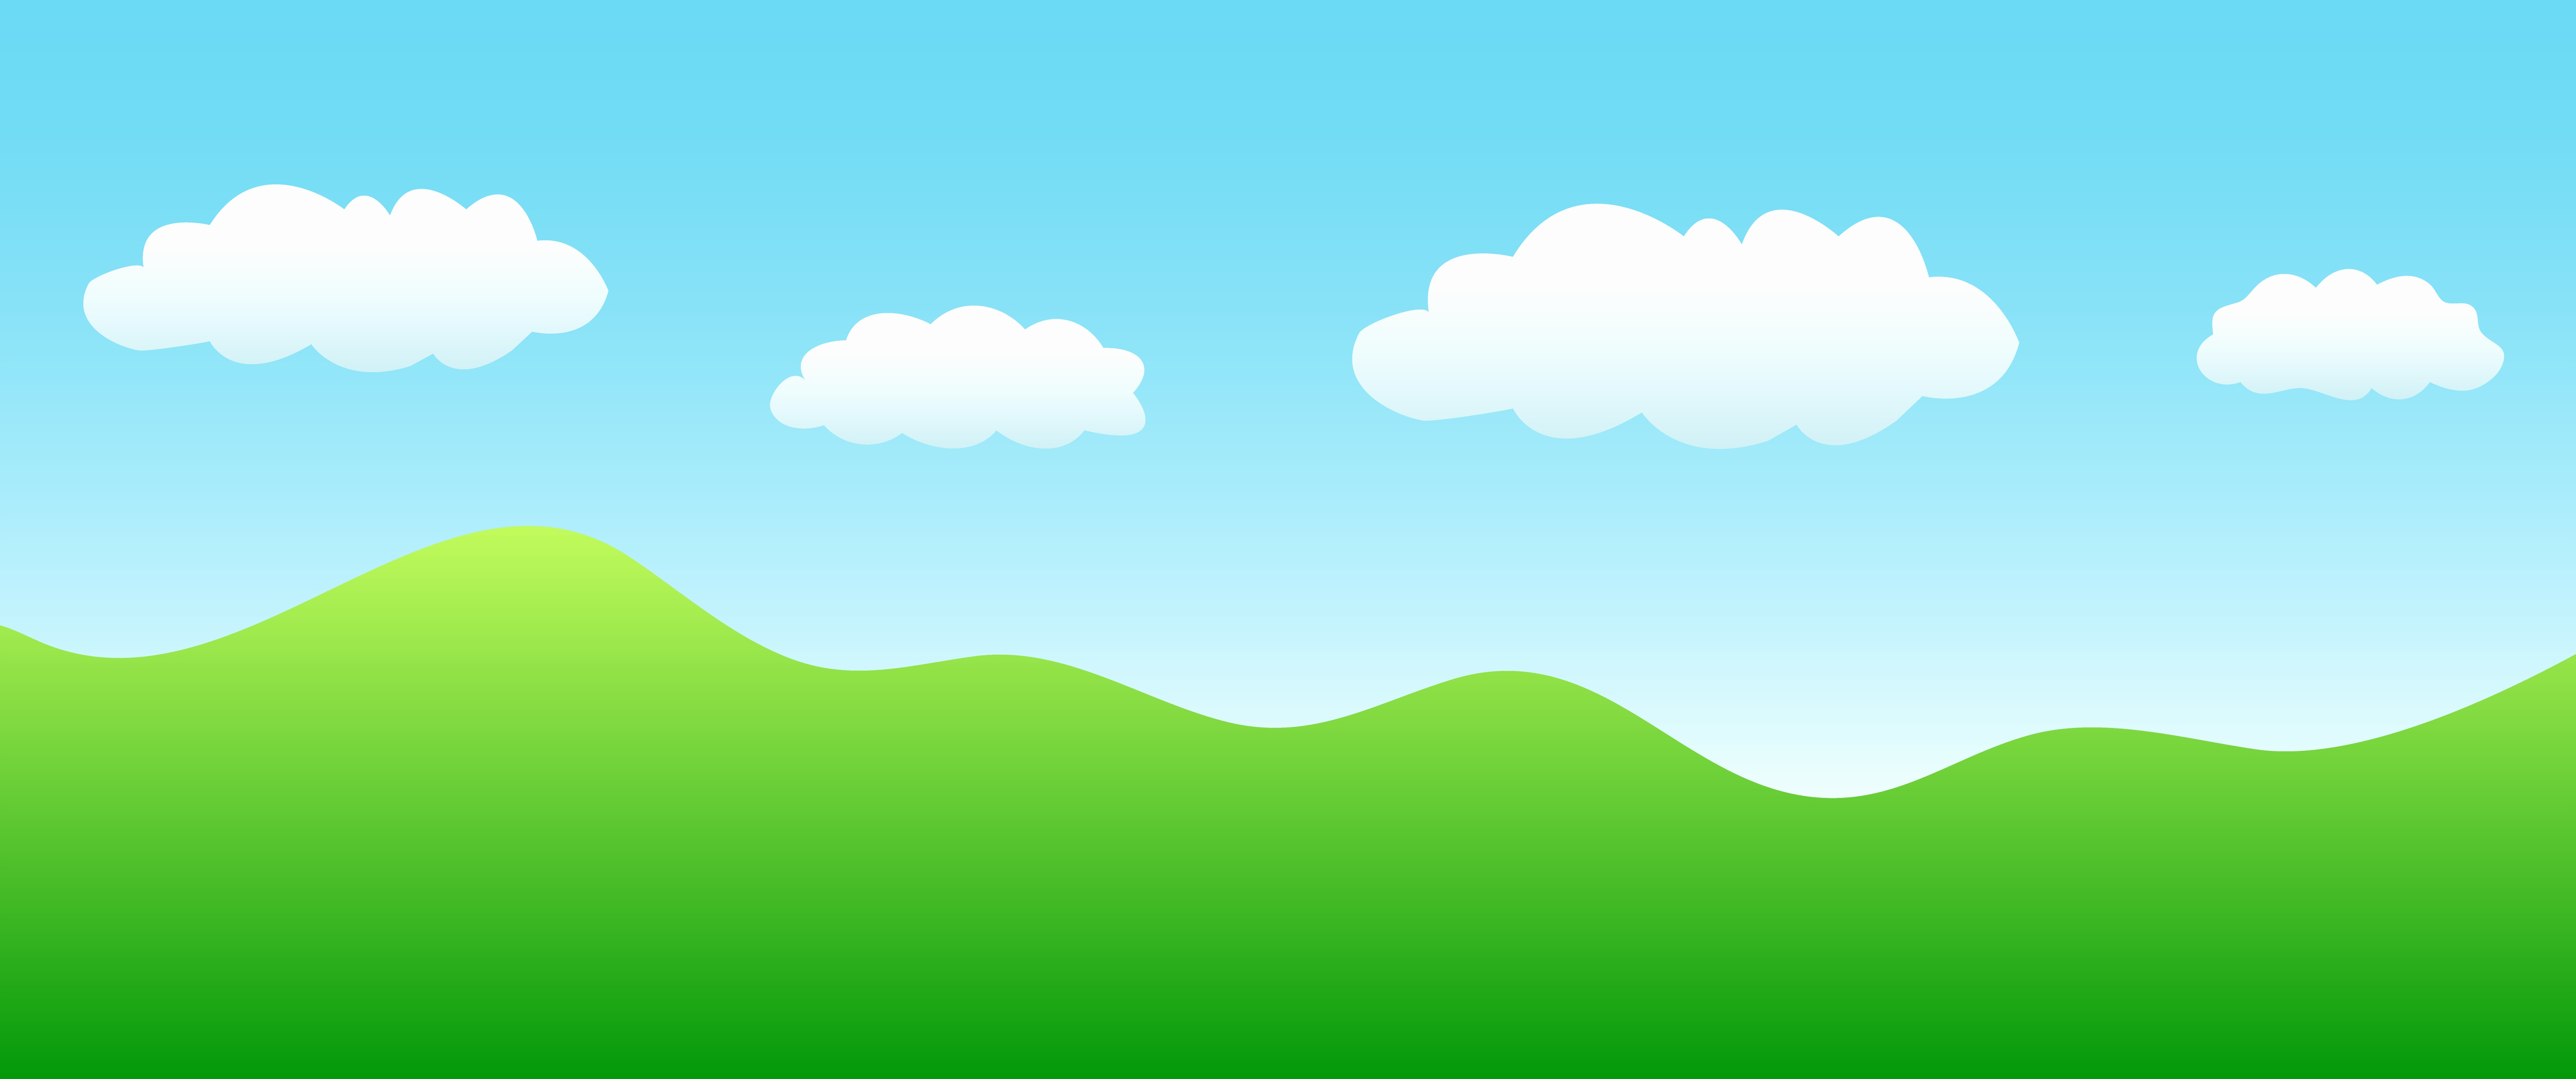 Landscape clipart sky. Picture of blue landscaping